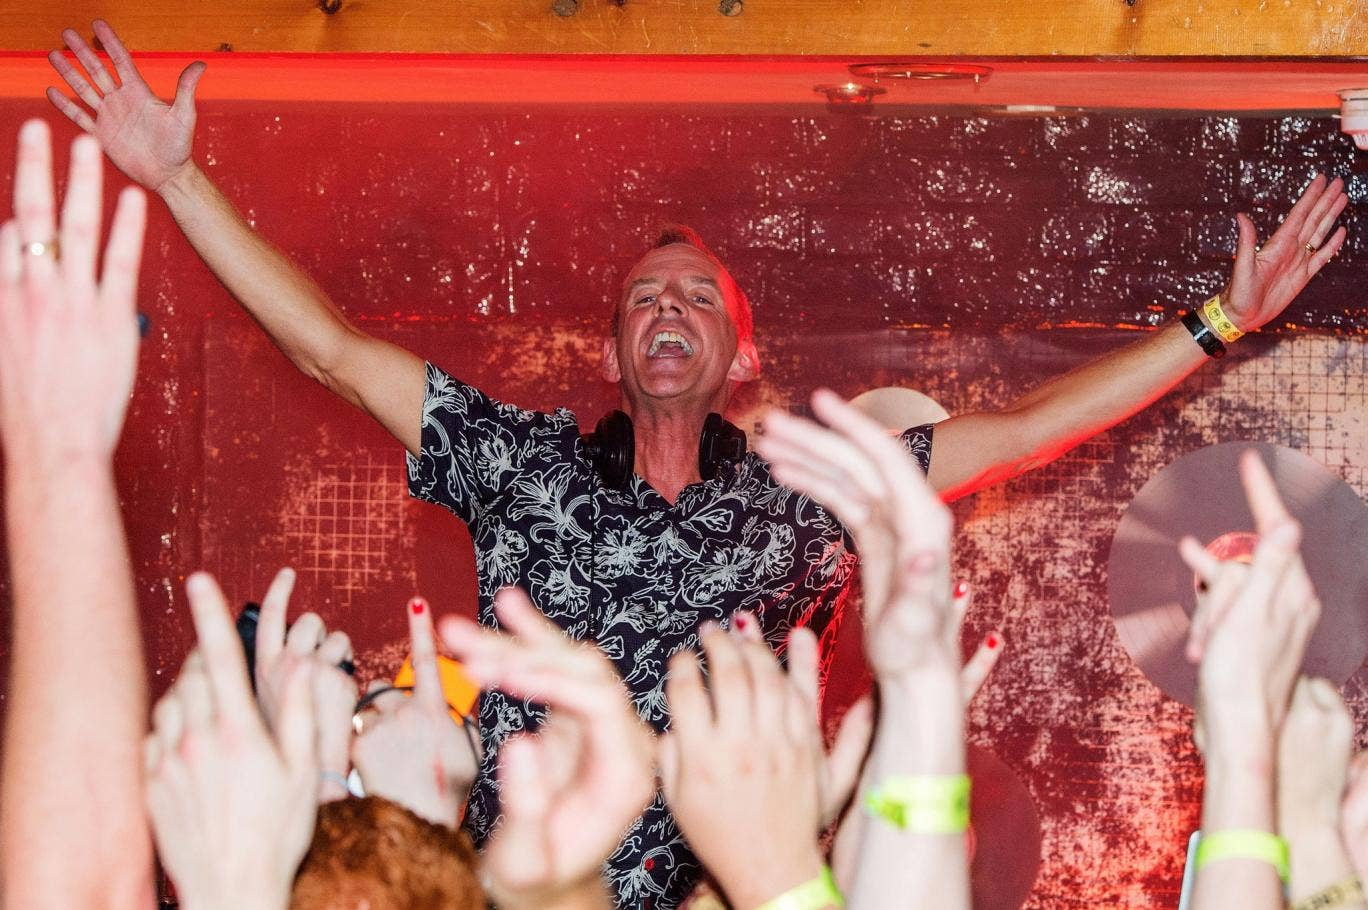 Fatboy Slim to play gig at the Palace of Westminster